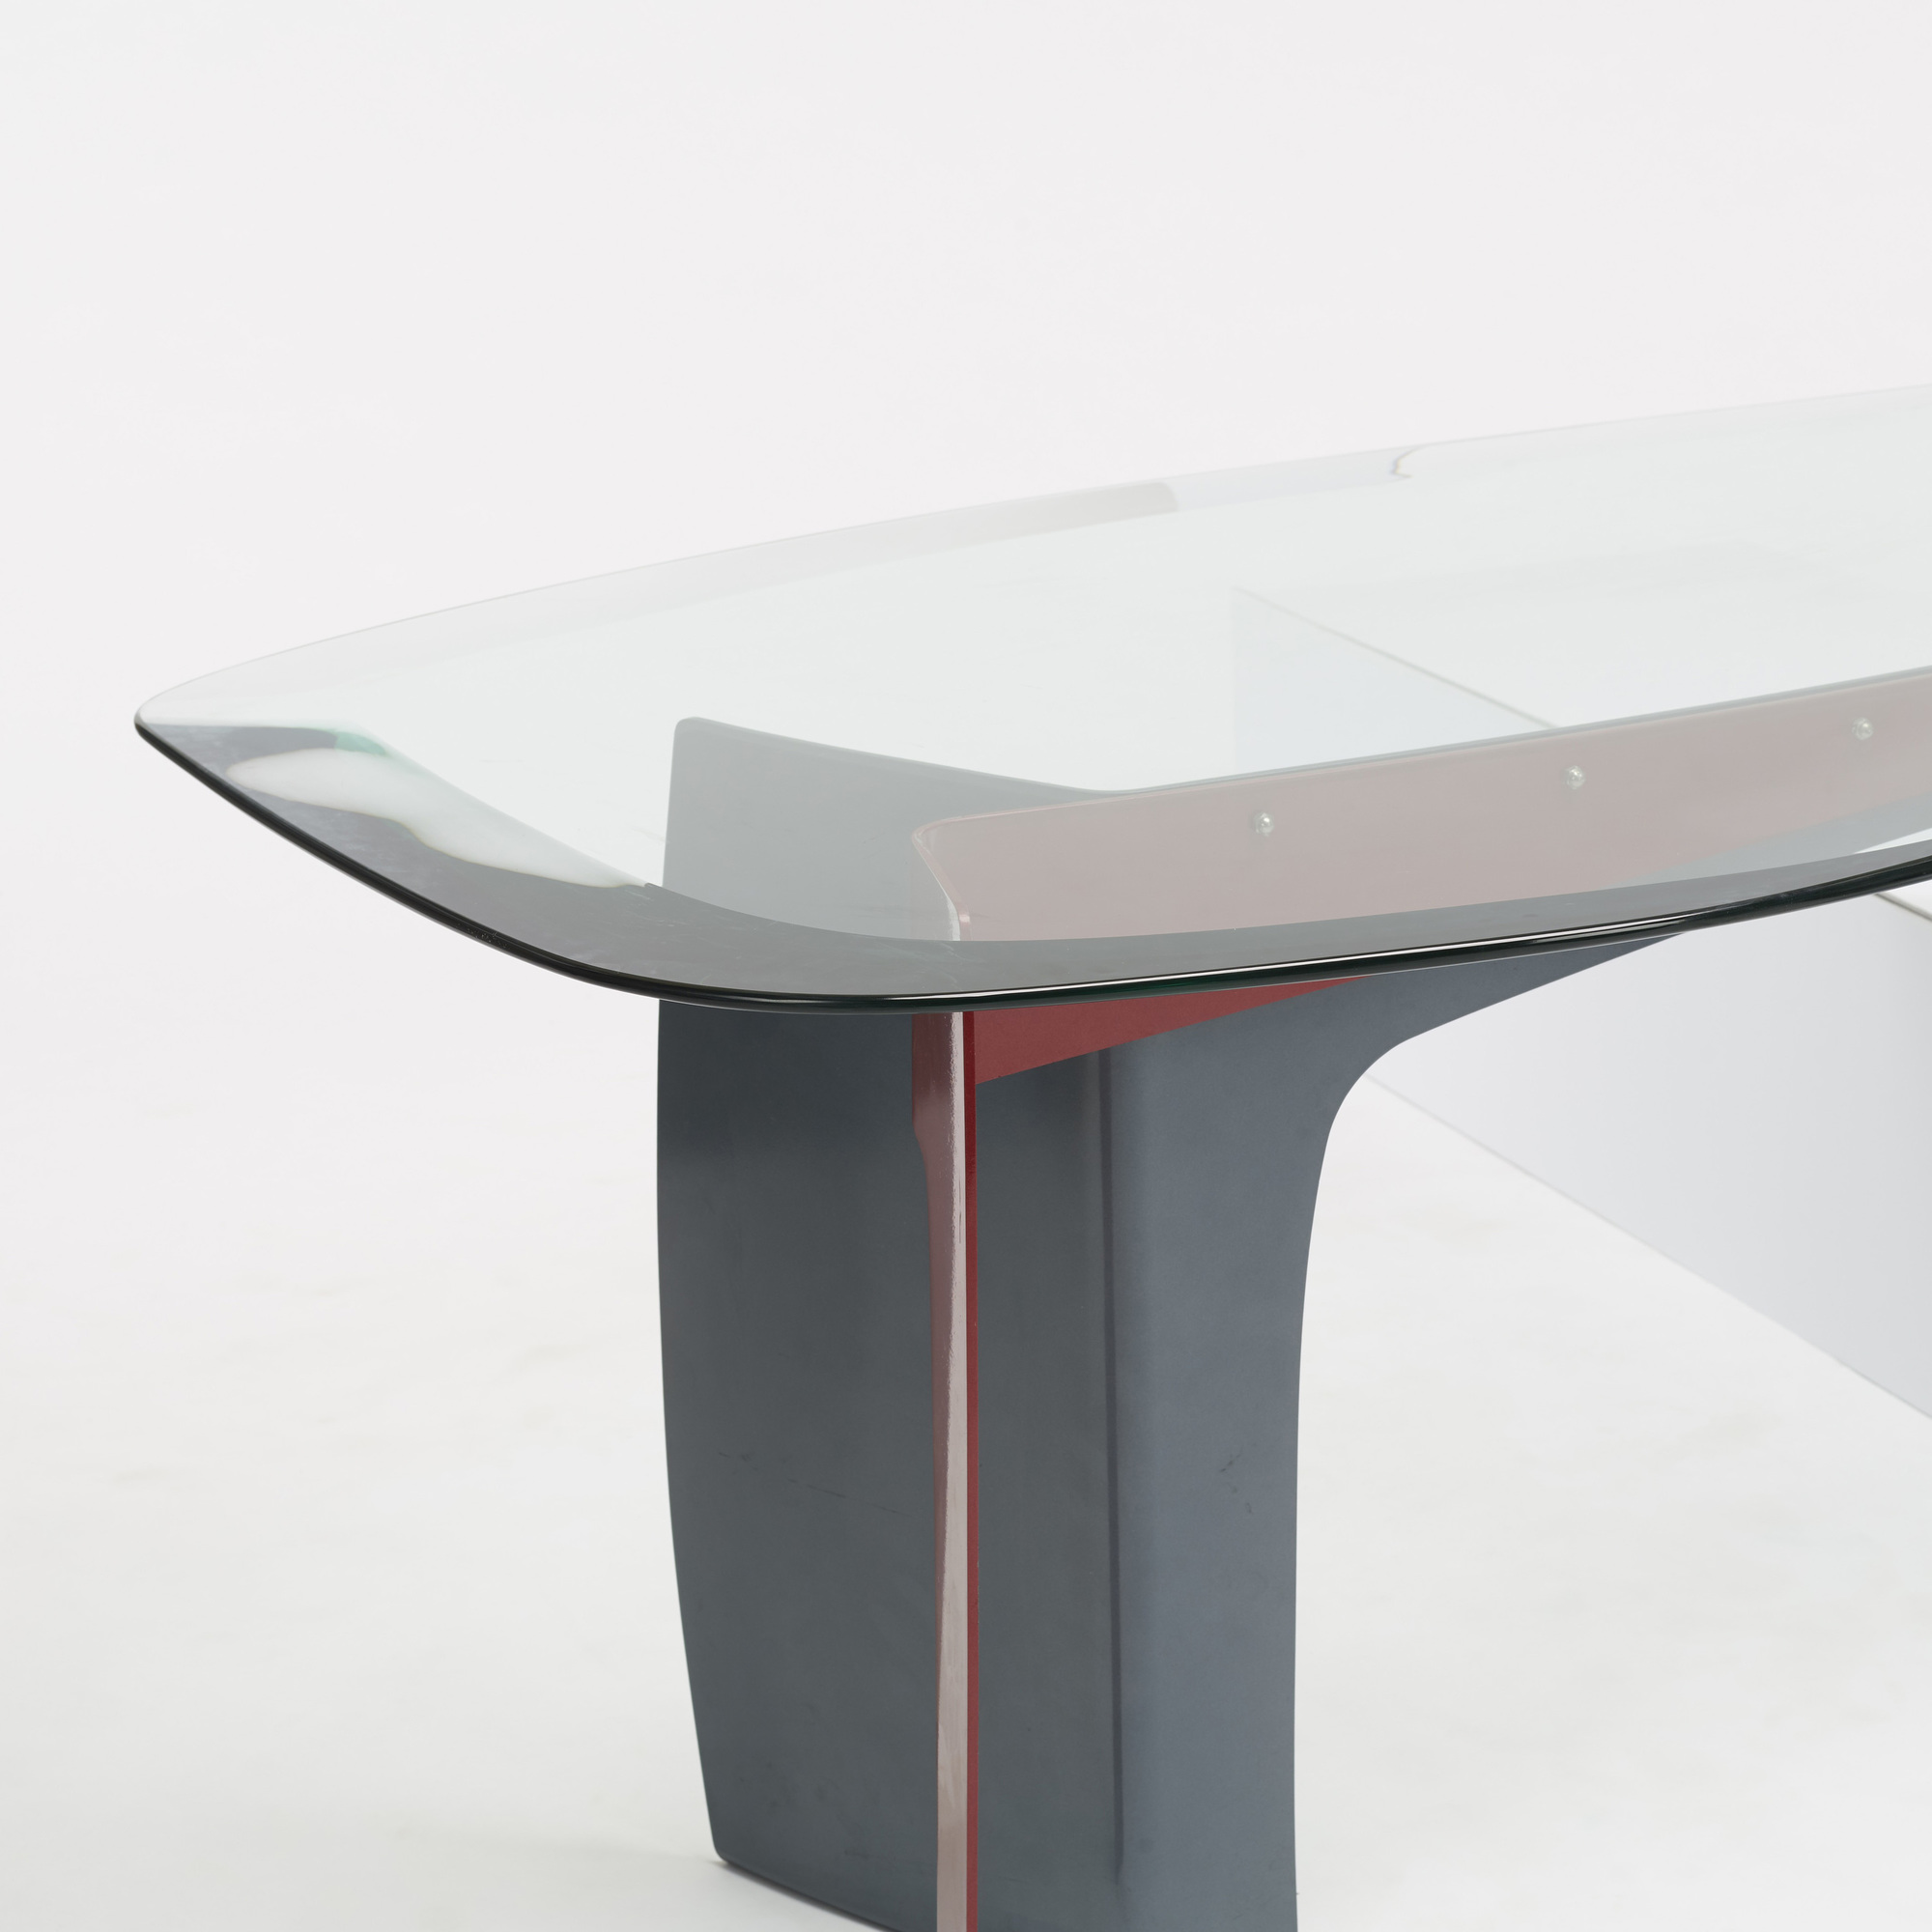 272: Ron Krueck and Mark Sexton / custom desk from Untitled No. 2, Chicago (3 of 4)